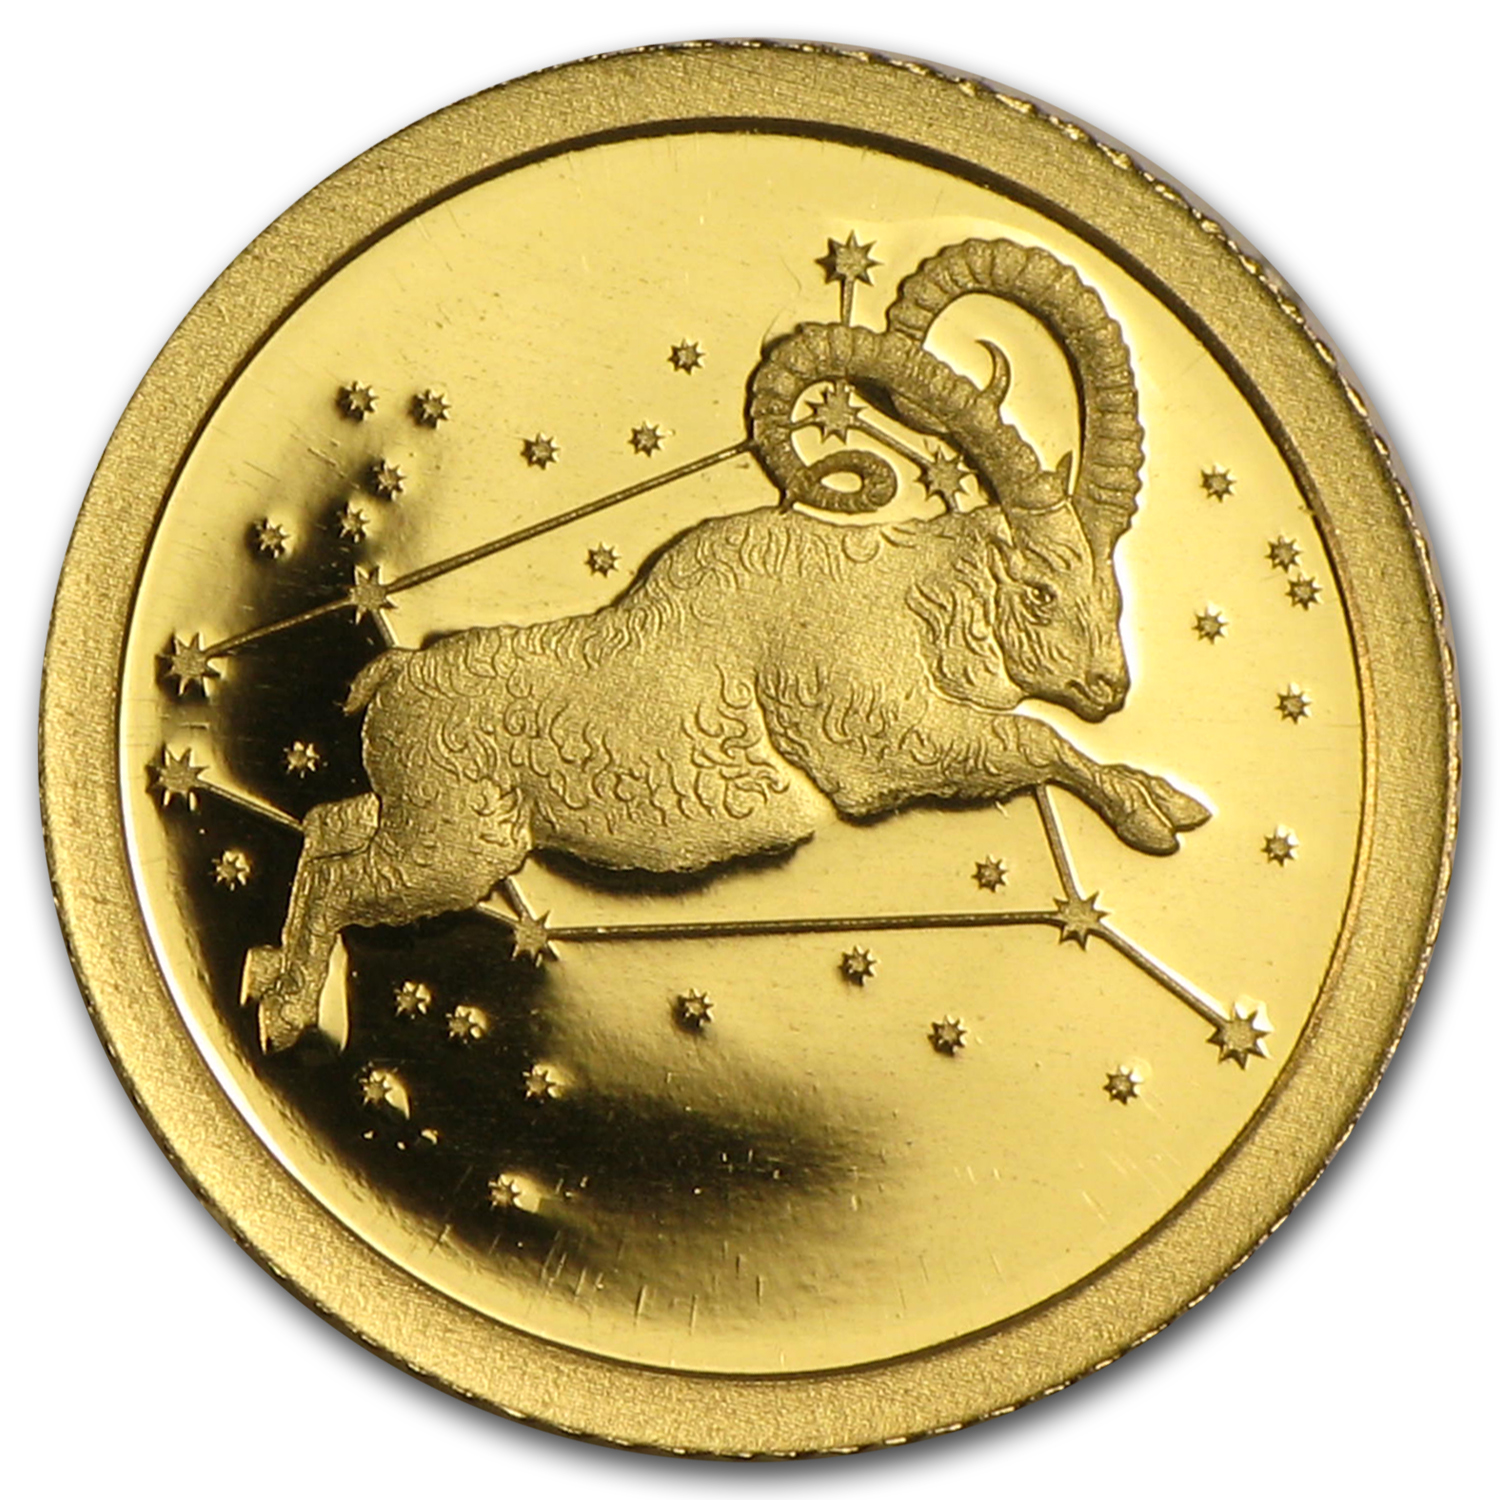 2015 Tokelau 1/2 gram Proof Gold $5 Aries, the Ram